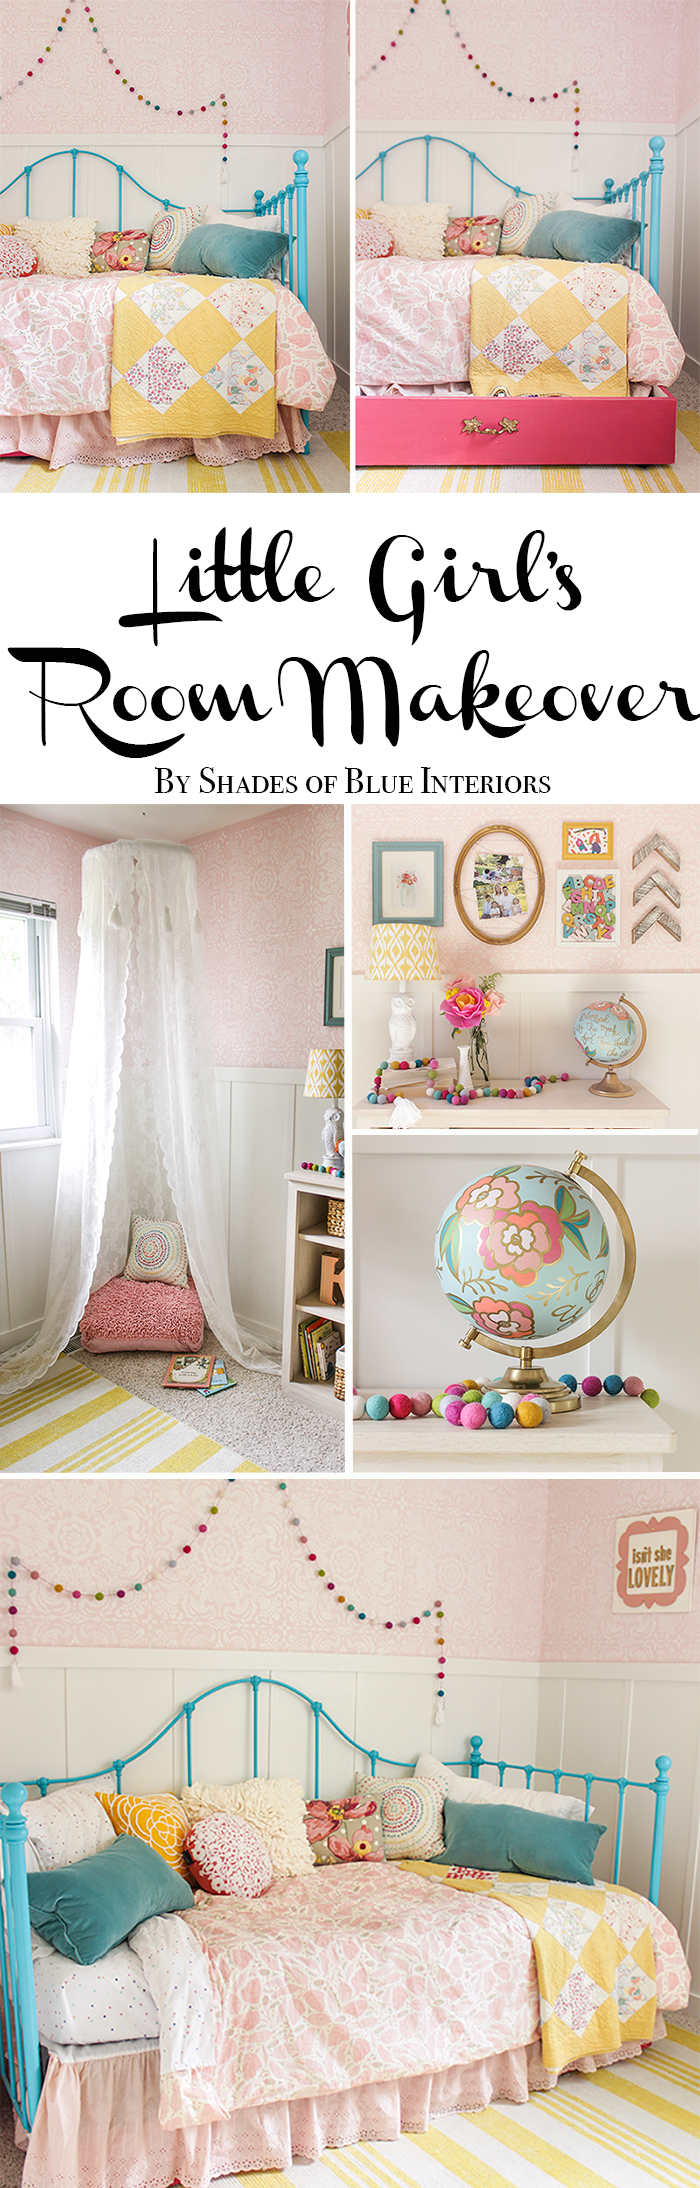 Little-Girls-Room-Makeover